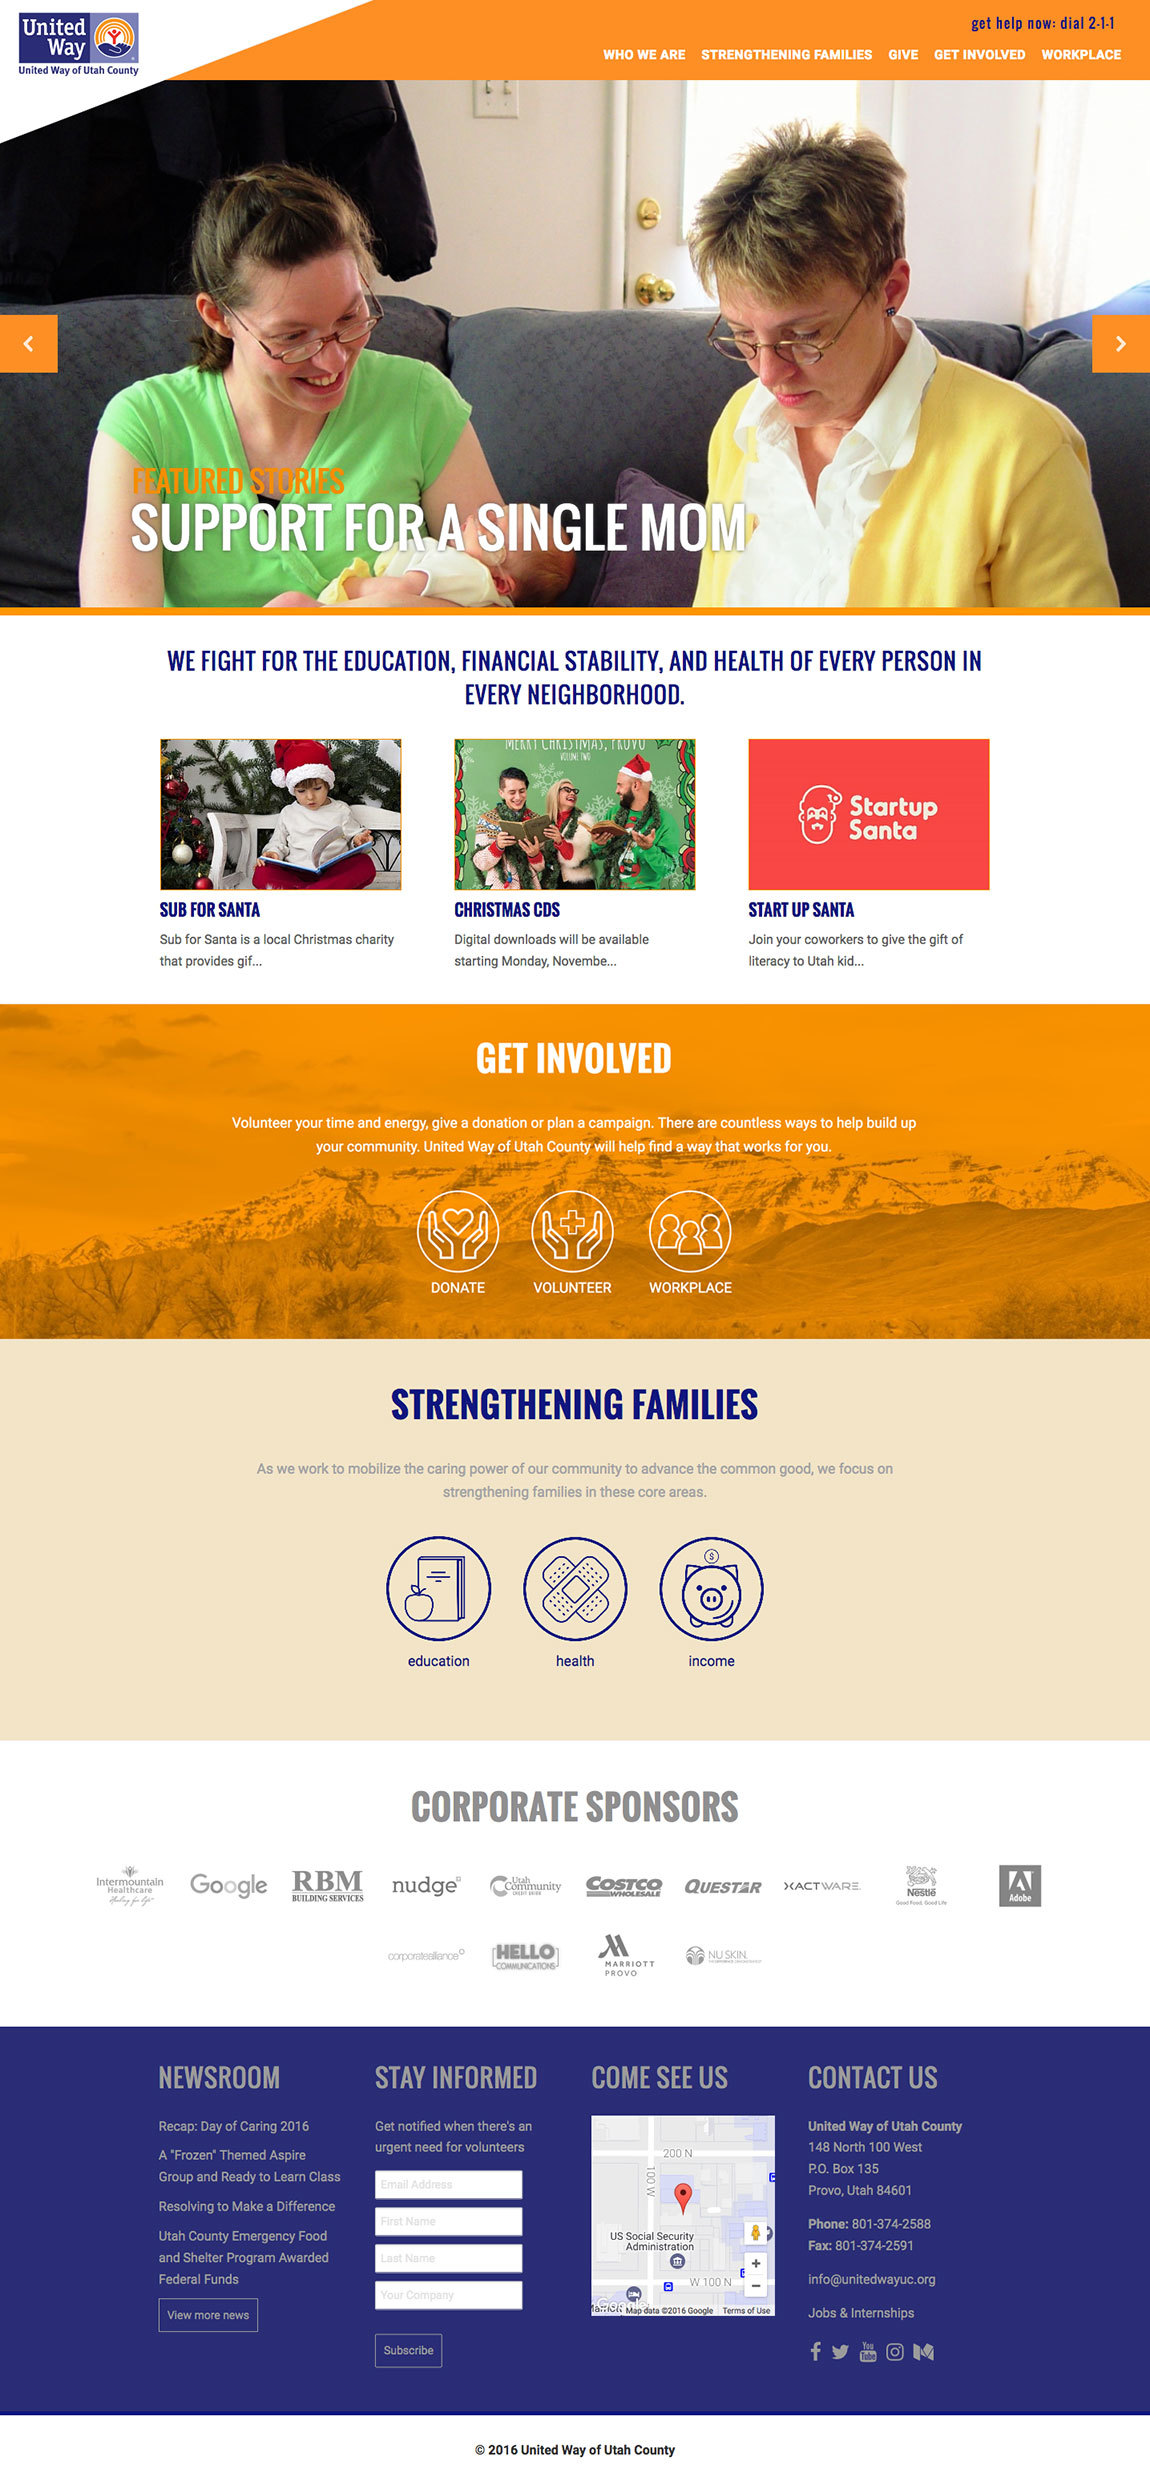 united way full homepage